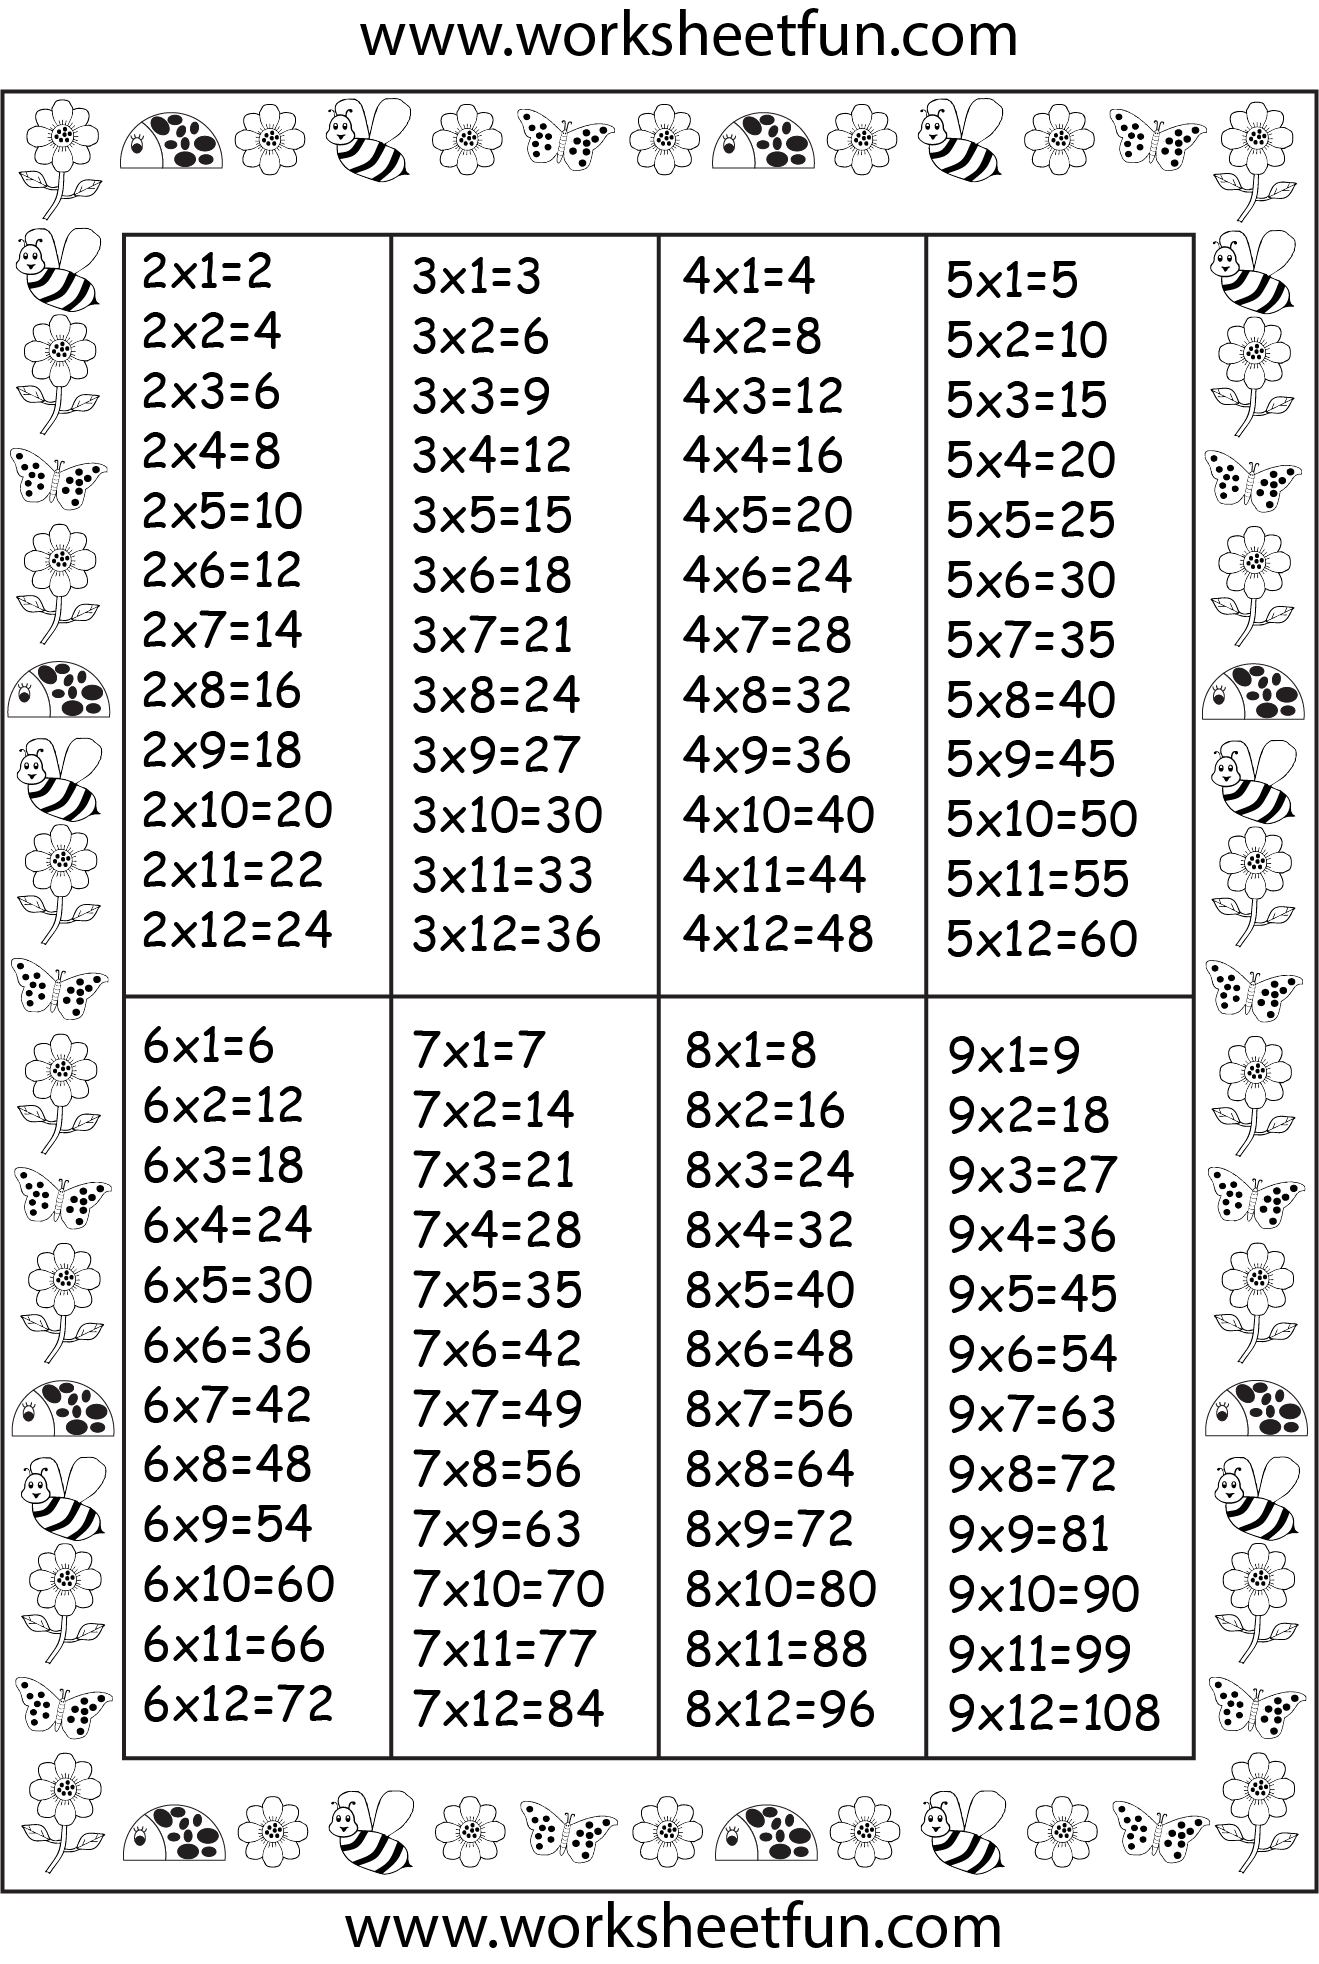 Times table chart | Printable Worksheets | Pinterest ...